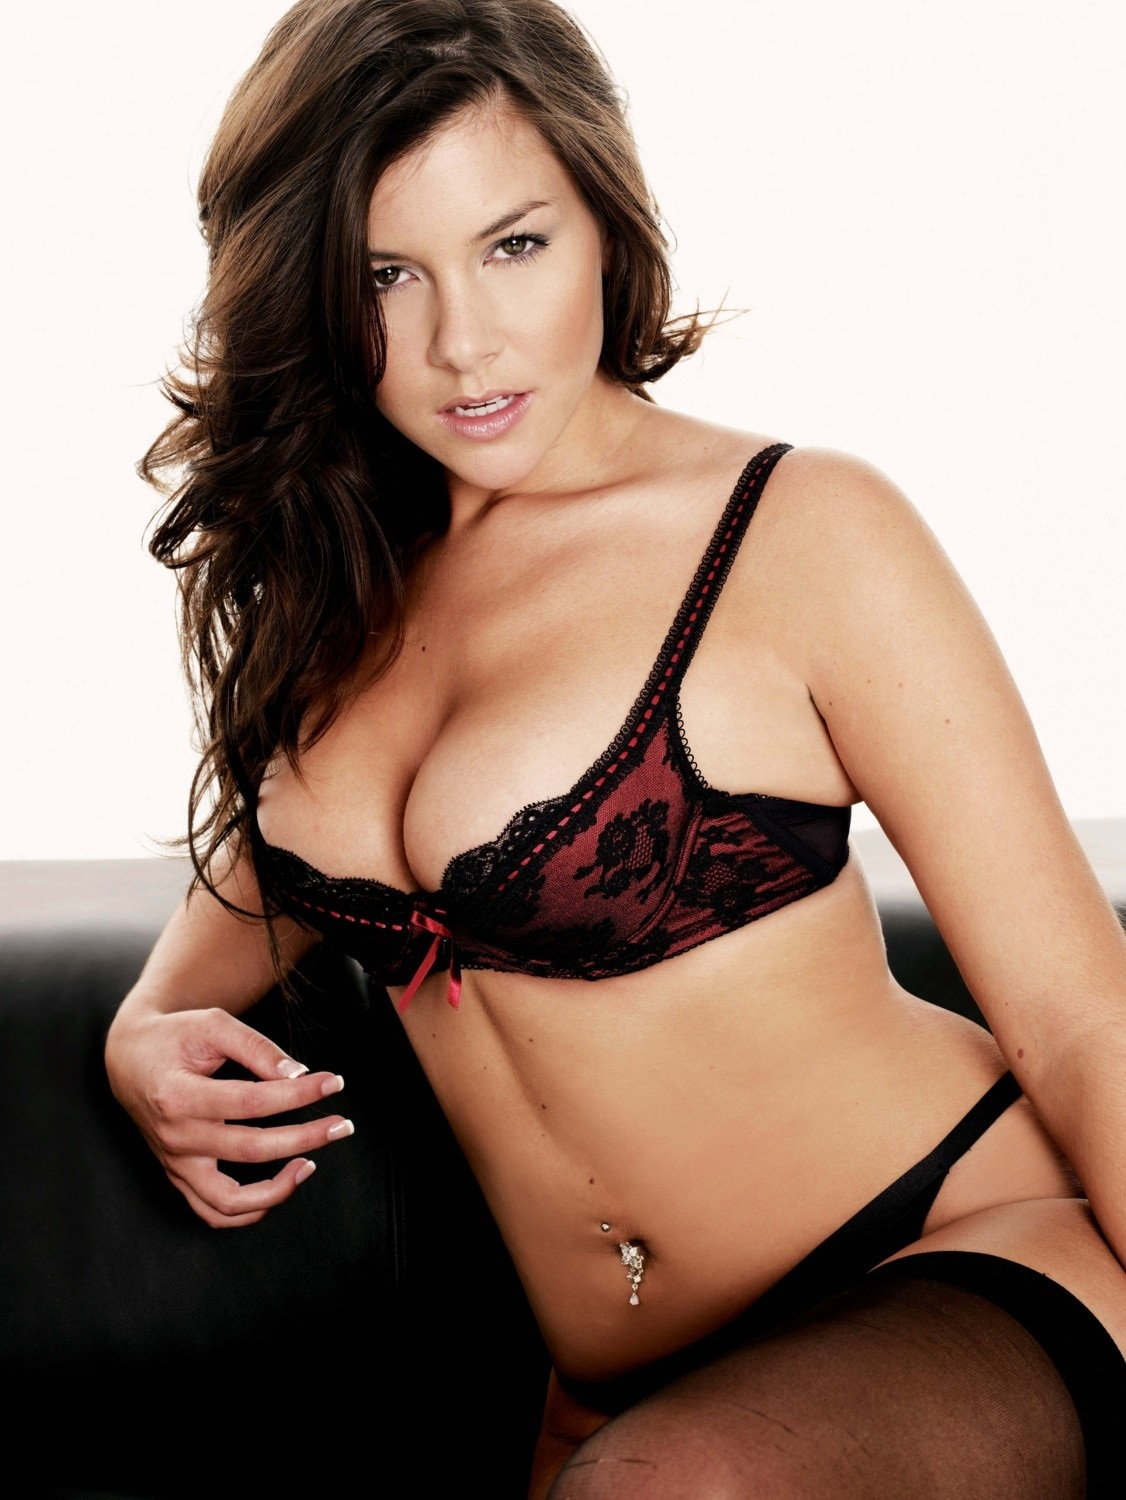 Imogen Thomas Height Weight Age Bra Size Affairs Body Stats Bollywoodfox Imogen Thomas